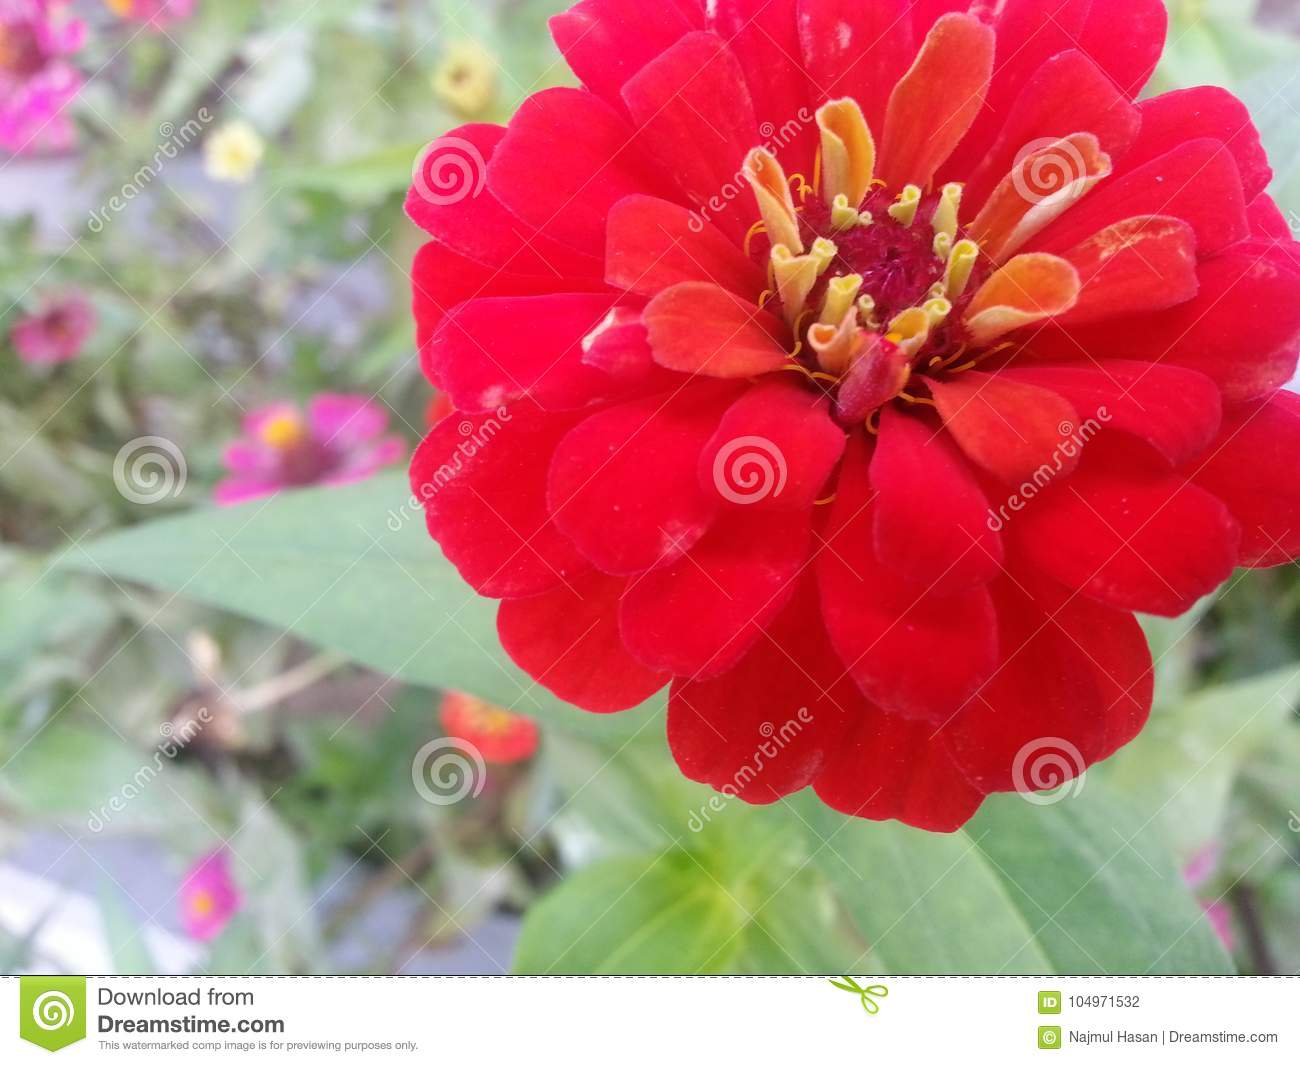 Red flower with yellow stamens and green leaves stock photo image red flower with yellow stamens and green leaves mightylinksfo